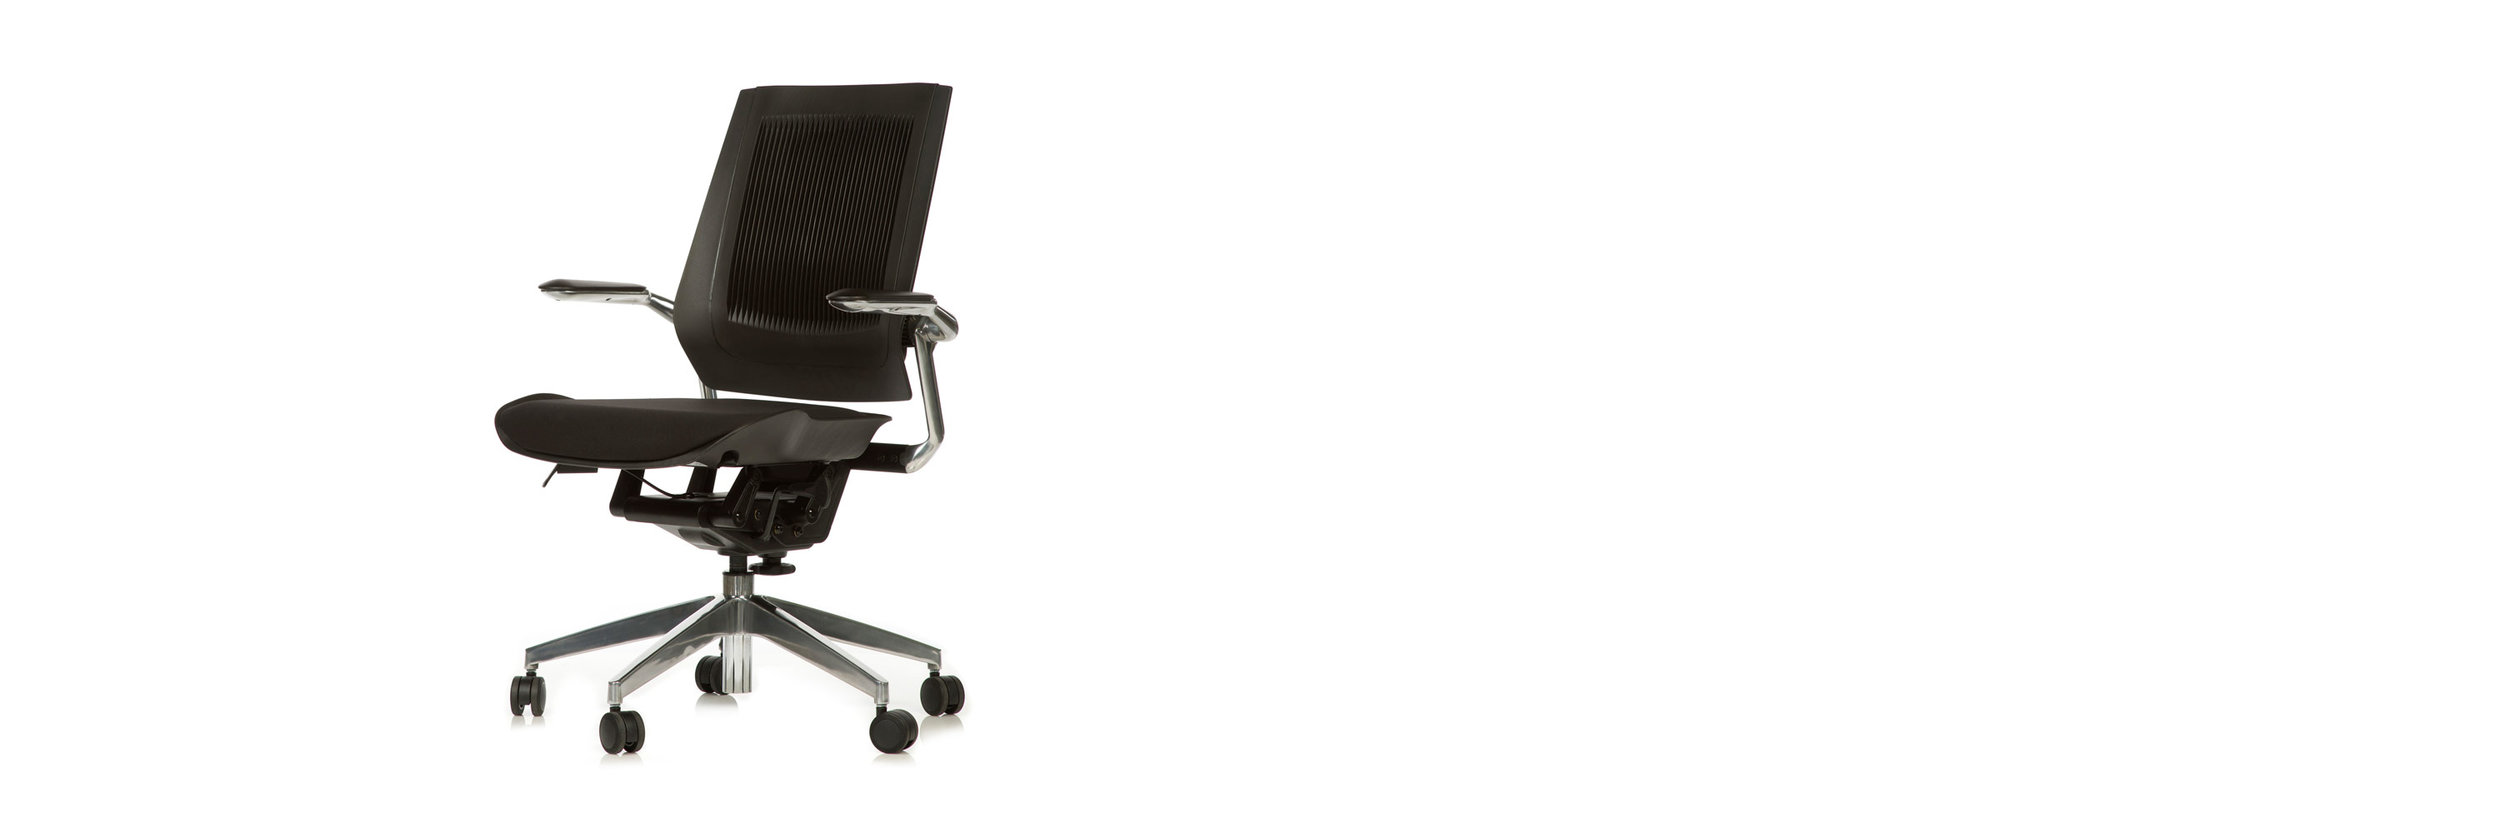 Seating - Browse our extensive range of seating